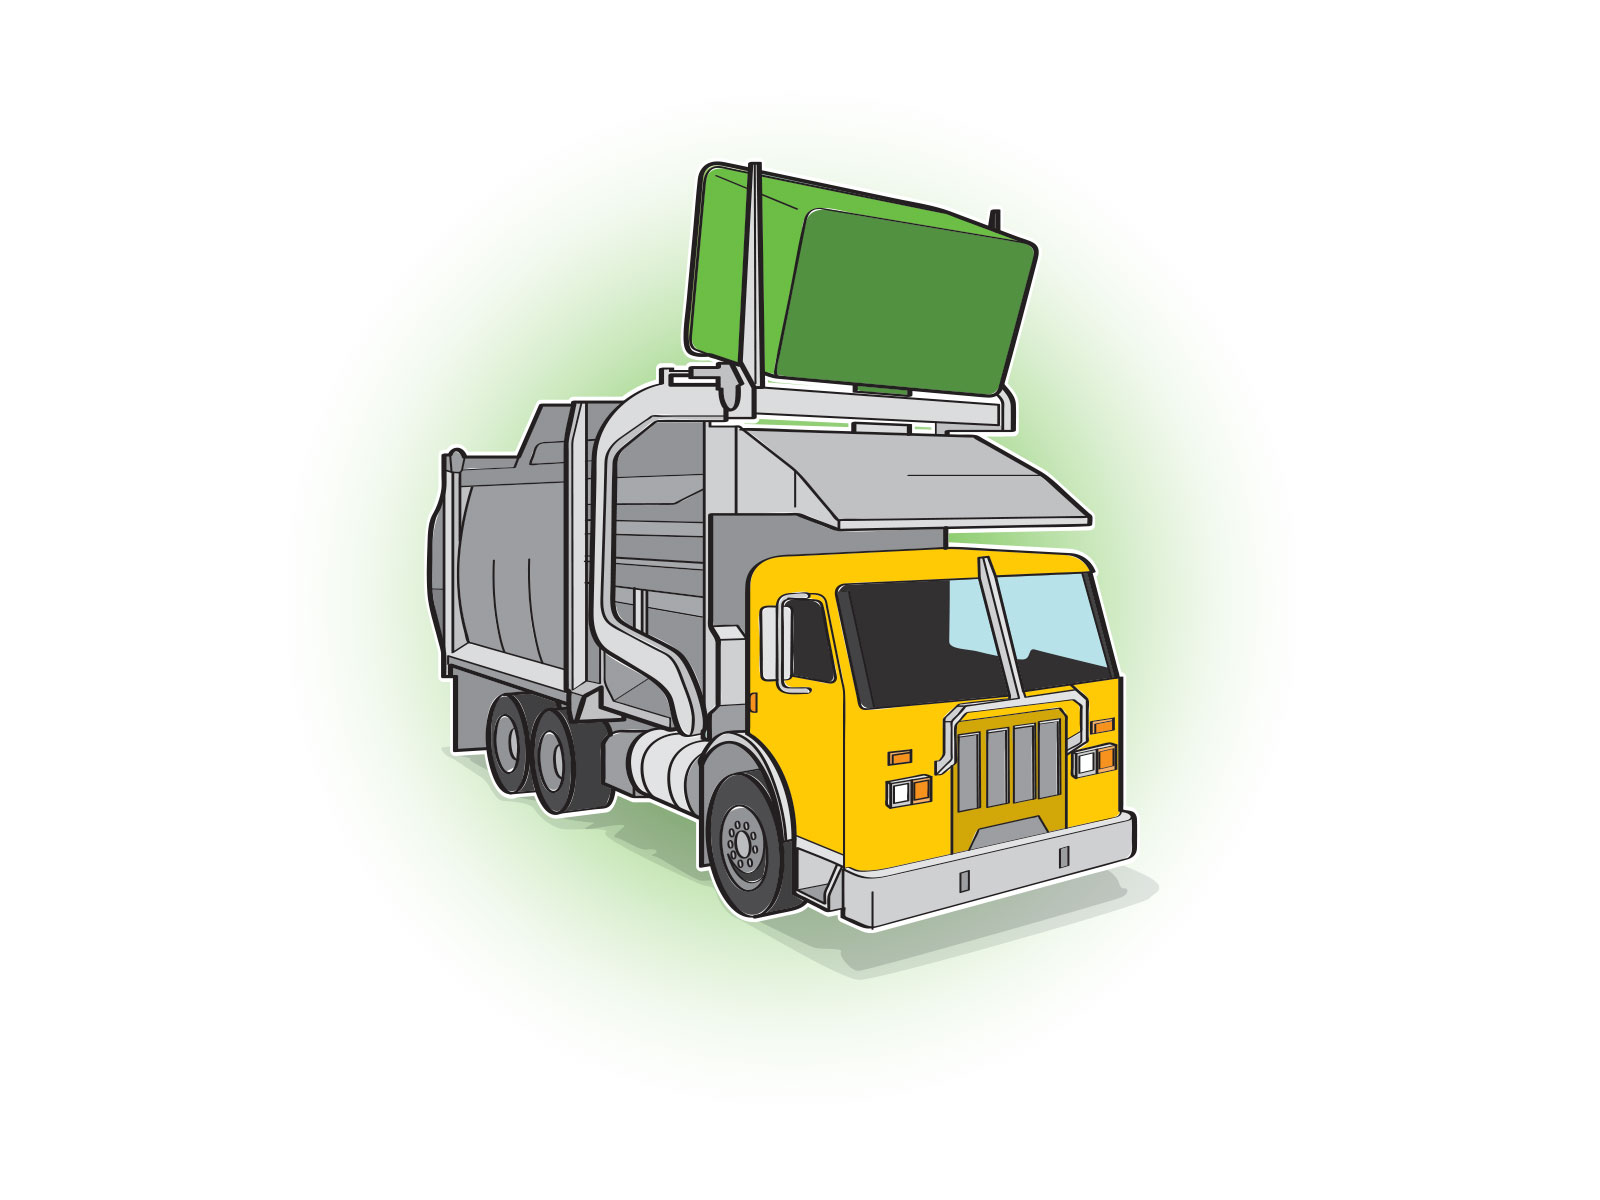 Stylised vector simplified illustration of rubbish truck emptying large skip